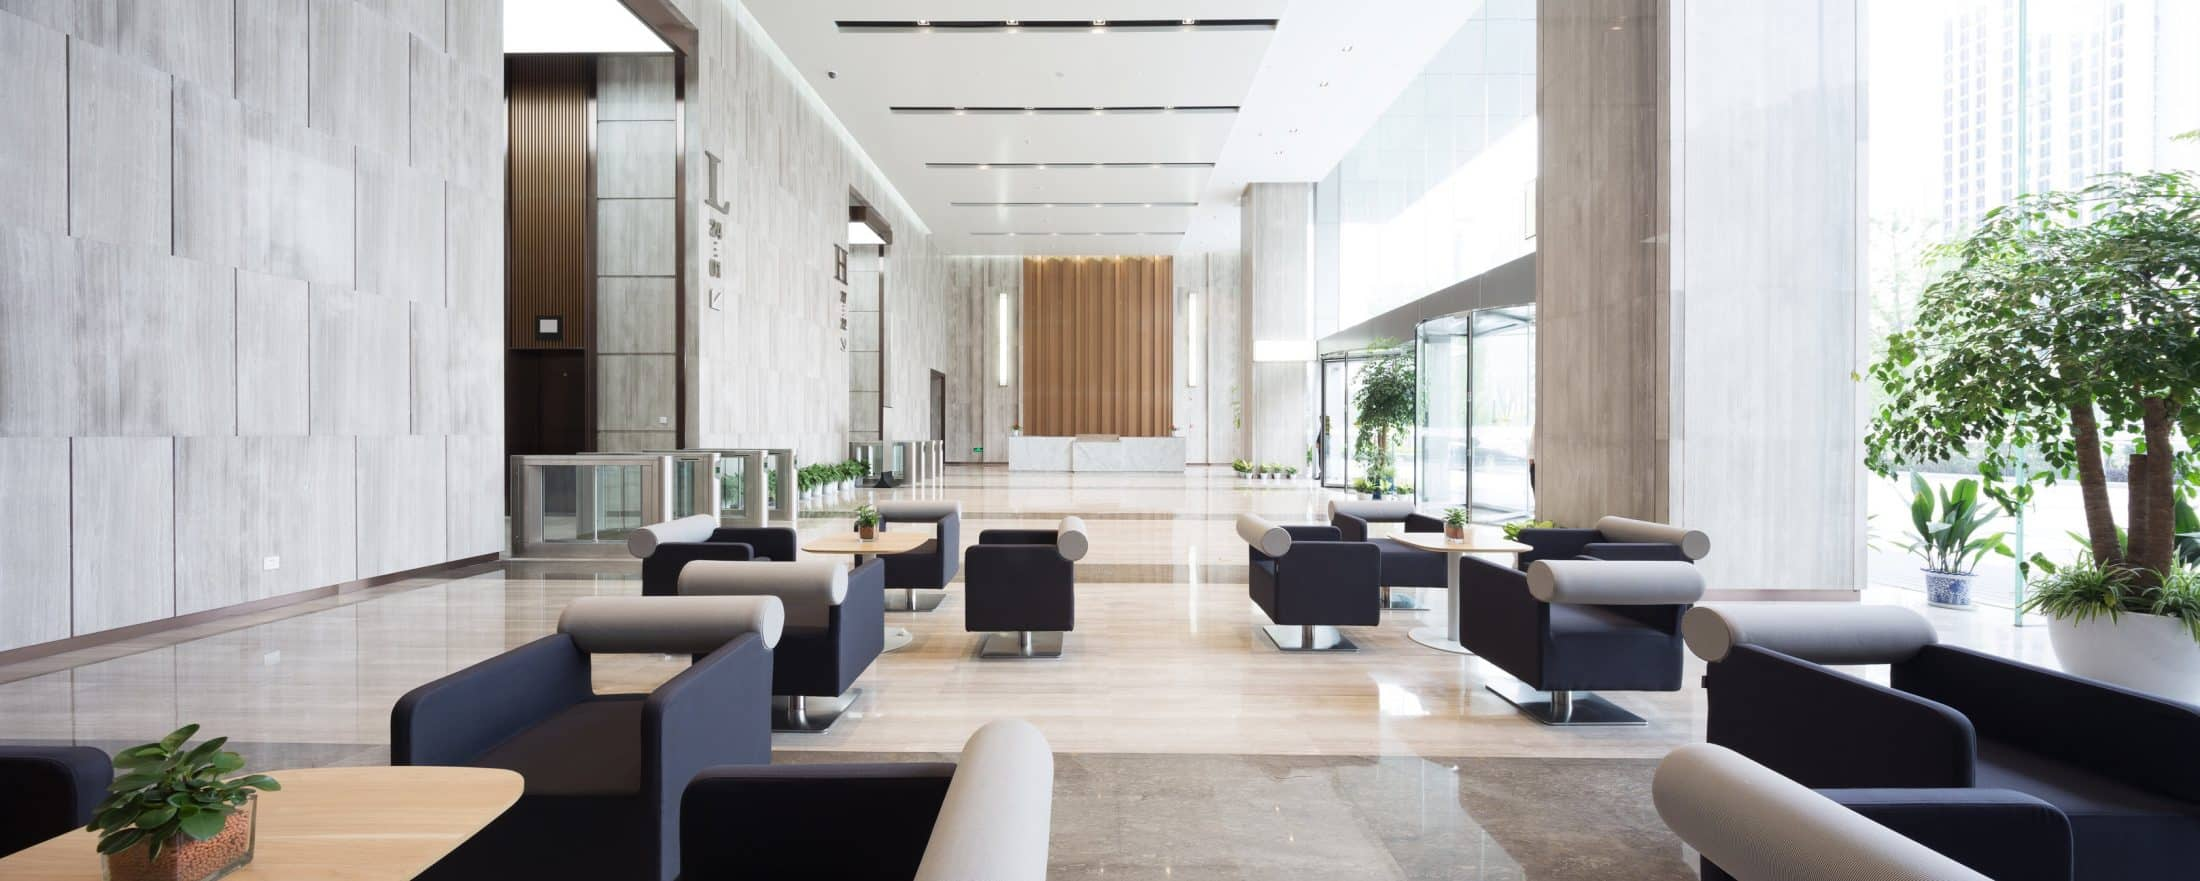 interior of entrance hall in an office building